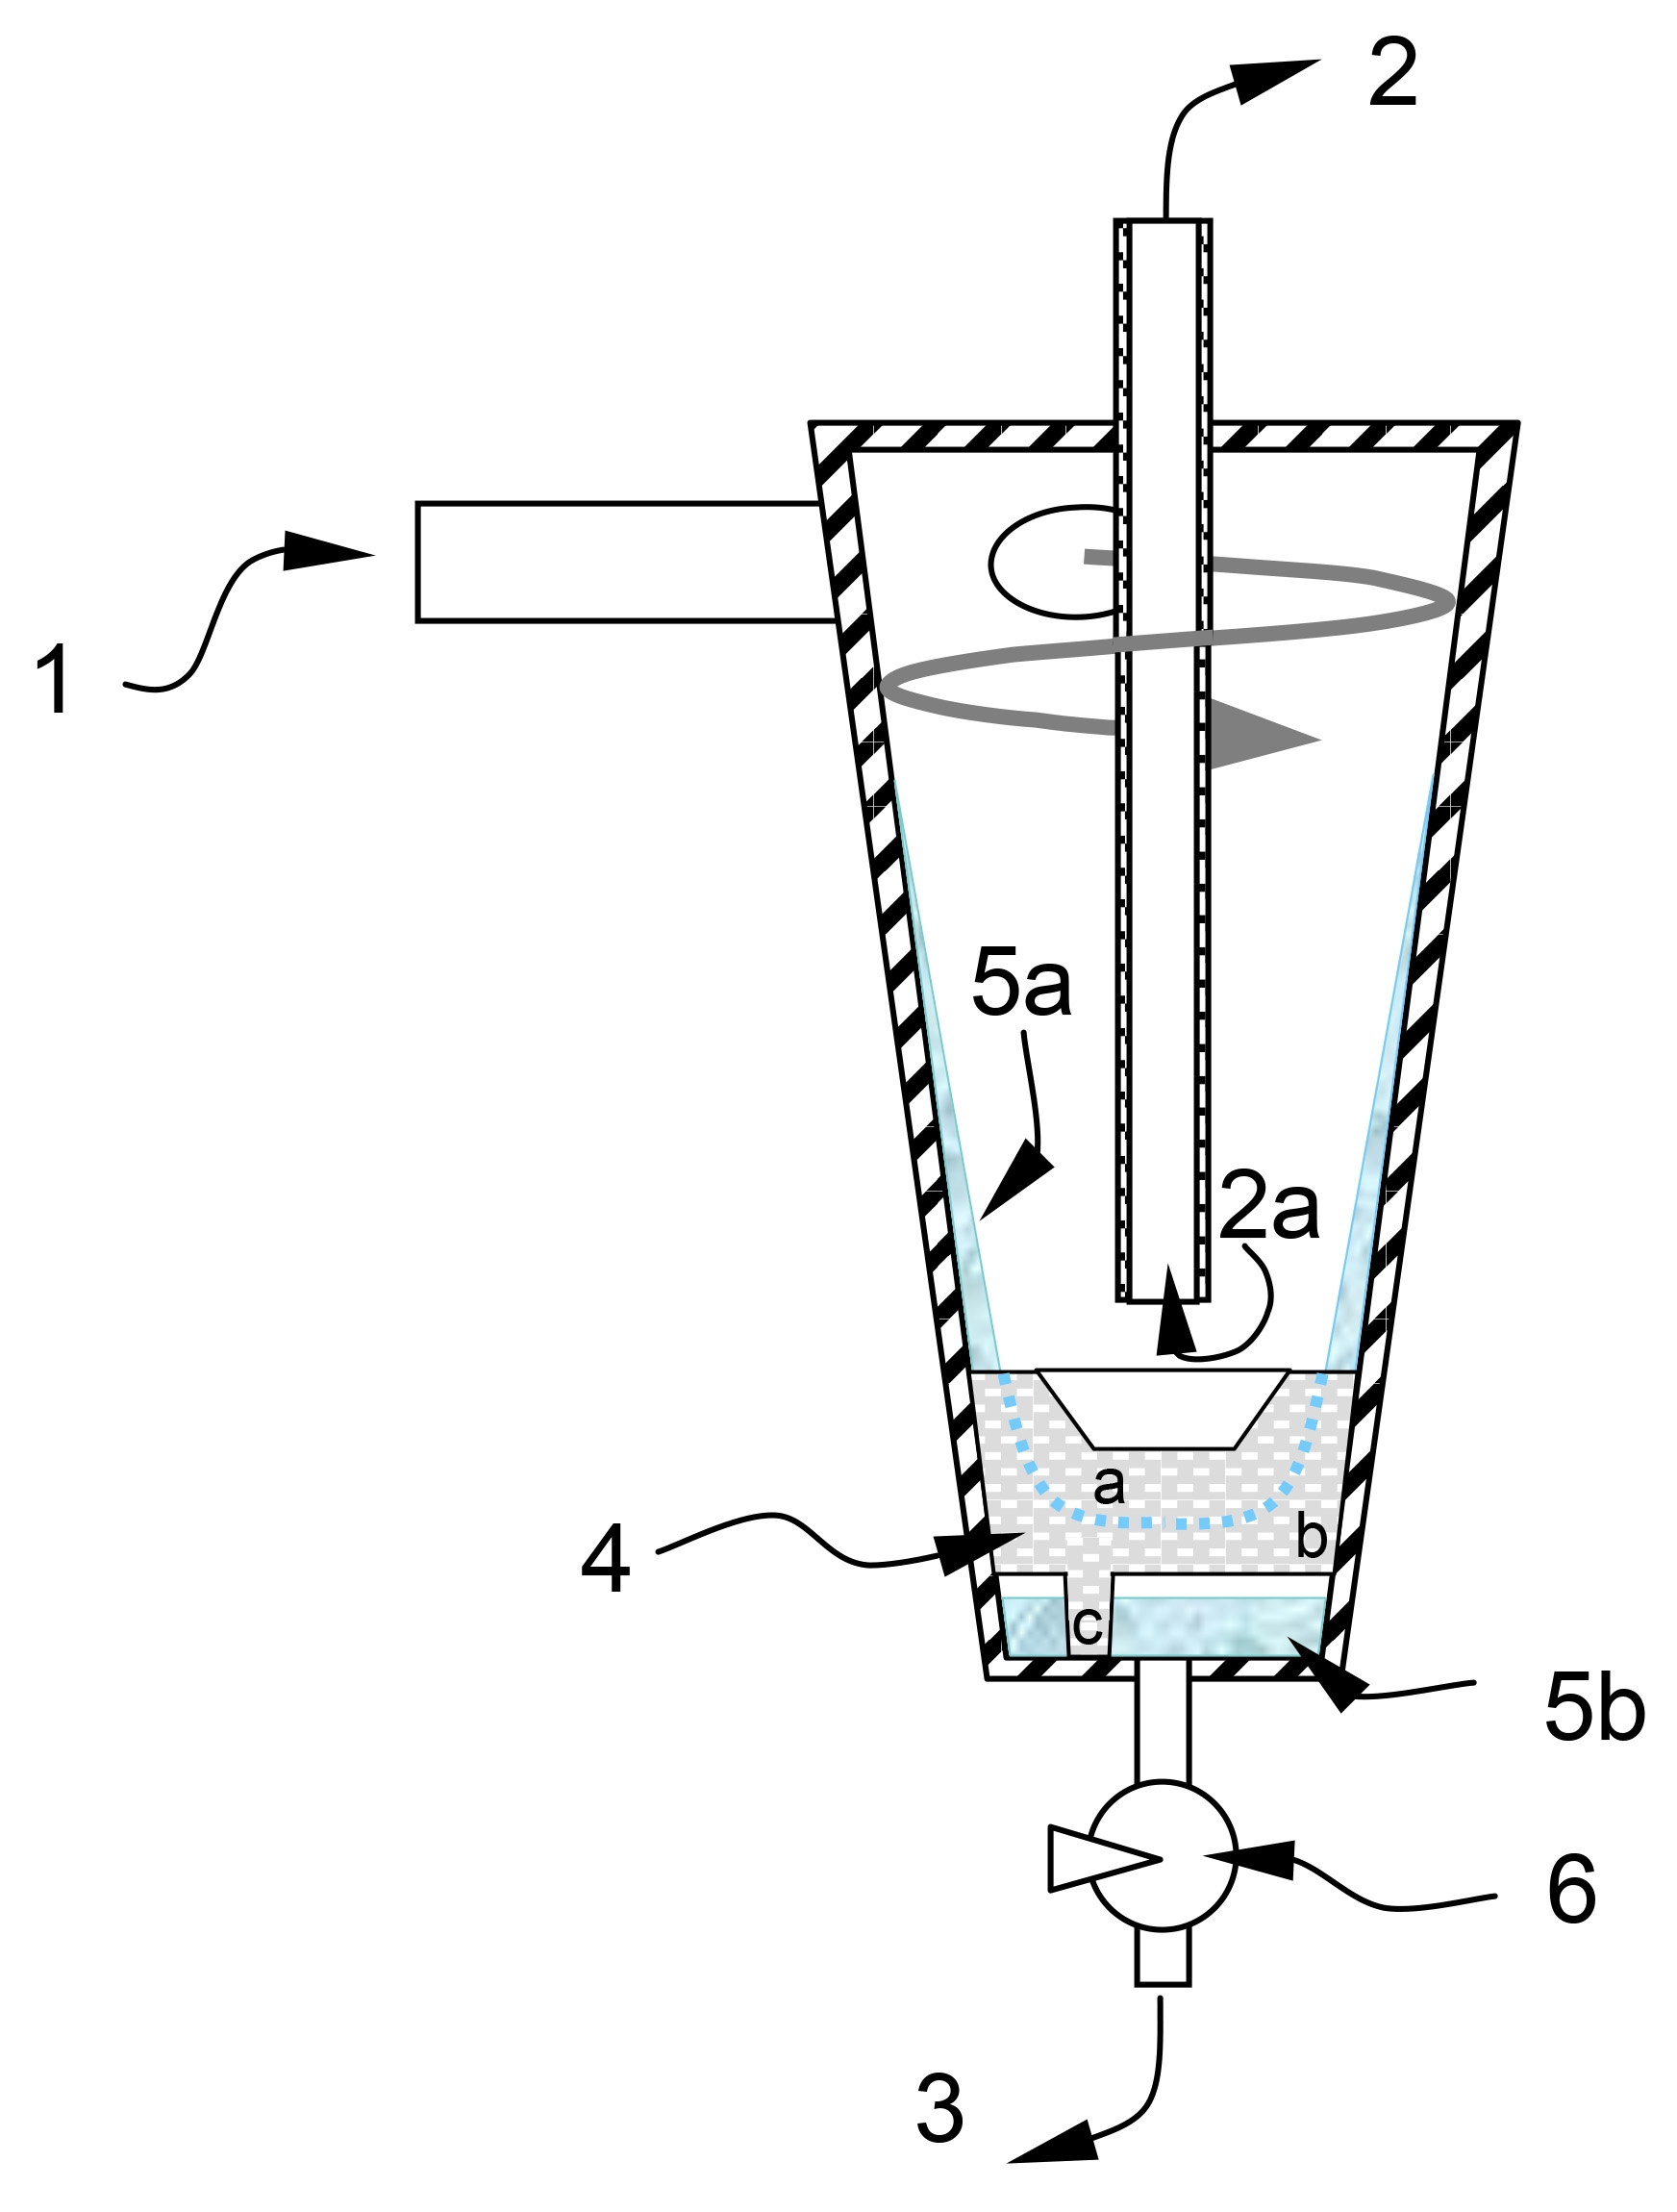 "The gas mixture to be de-humidified flows tangentially through an inlet pipe (1) into the separator, and flows downwards like a tornado (hence the name 'Zyklon'['cyclone']). Centrifugal forces push the excess liquid onto the outer walls. This condensate film (5a) can be torn away from the walls again by the flowing gas. To prevent this happening, a porous insert is fitted inside the lower section of the separator. This is designed so that the condensate in area 4a directly underneath outlet pipe 2a (via which the saturated gas leaves the separator) is partially saturated and therefore not easily entrained.  This therefore prevents the formation of an otherwise occurring ""waterspout"". The liquid (5b) flows out of the saturated area (4b, 4c) and accumulates in a volume beneath the insert. Measurement of the amount of liquid collected (5b) enables the process-driven opening of a drainage valve (6) and thus the discharge of the liquid (3). Source: Paul Scherrer Institute."